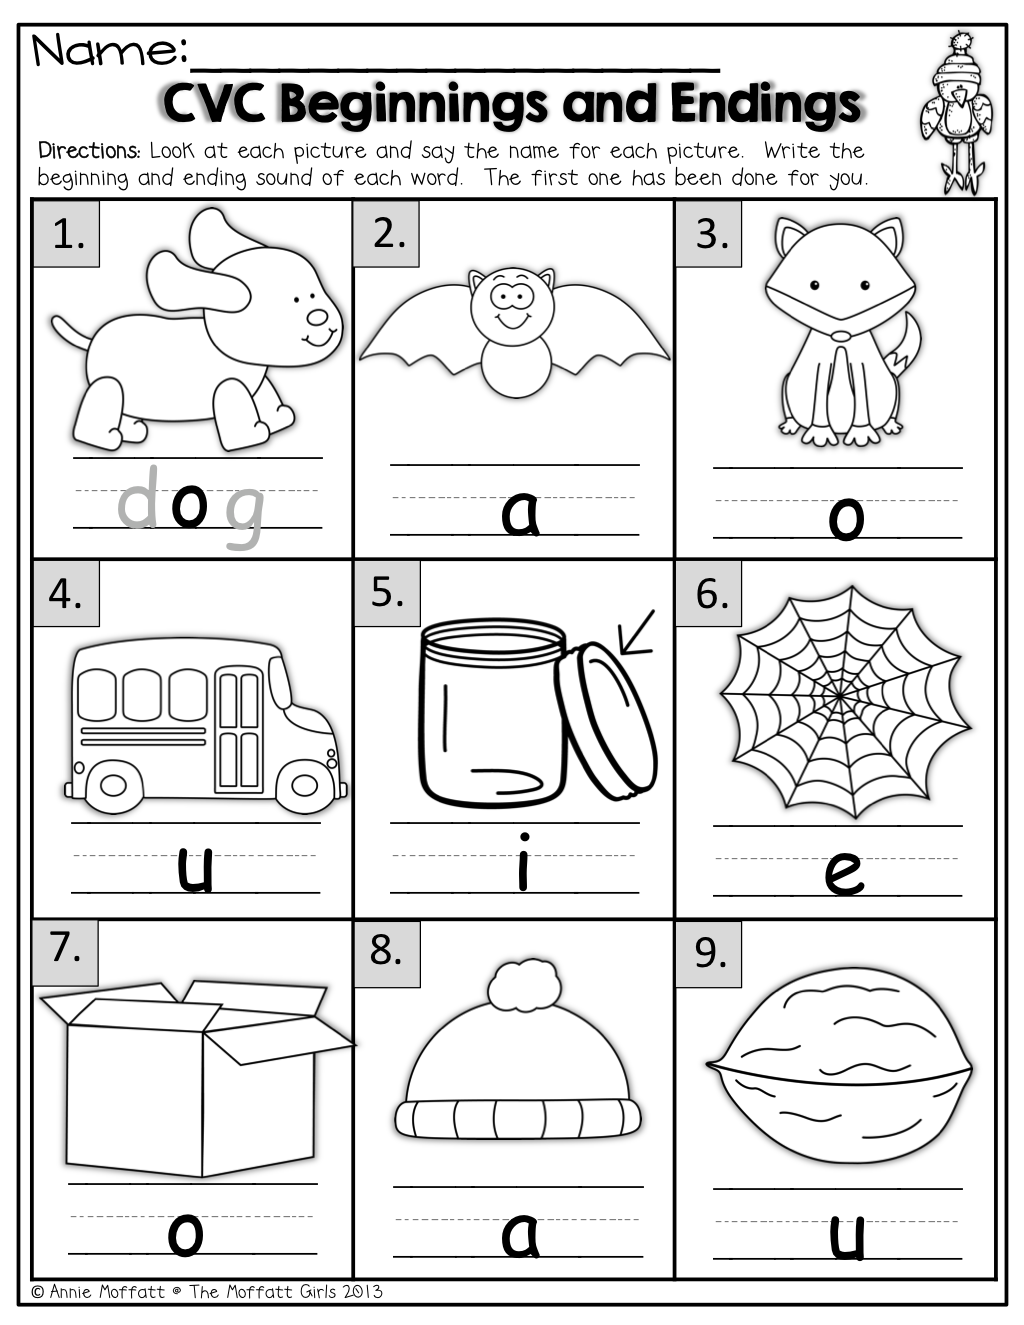 Kindergarten  Kindergarten Initial Sound Worksheets For Cvc